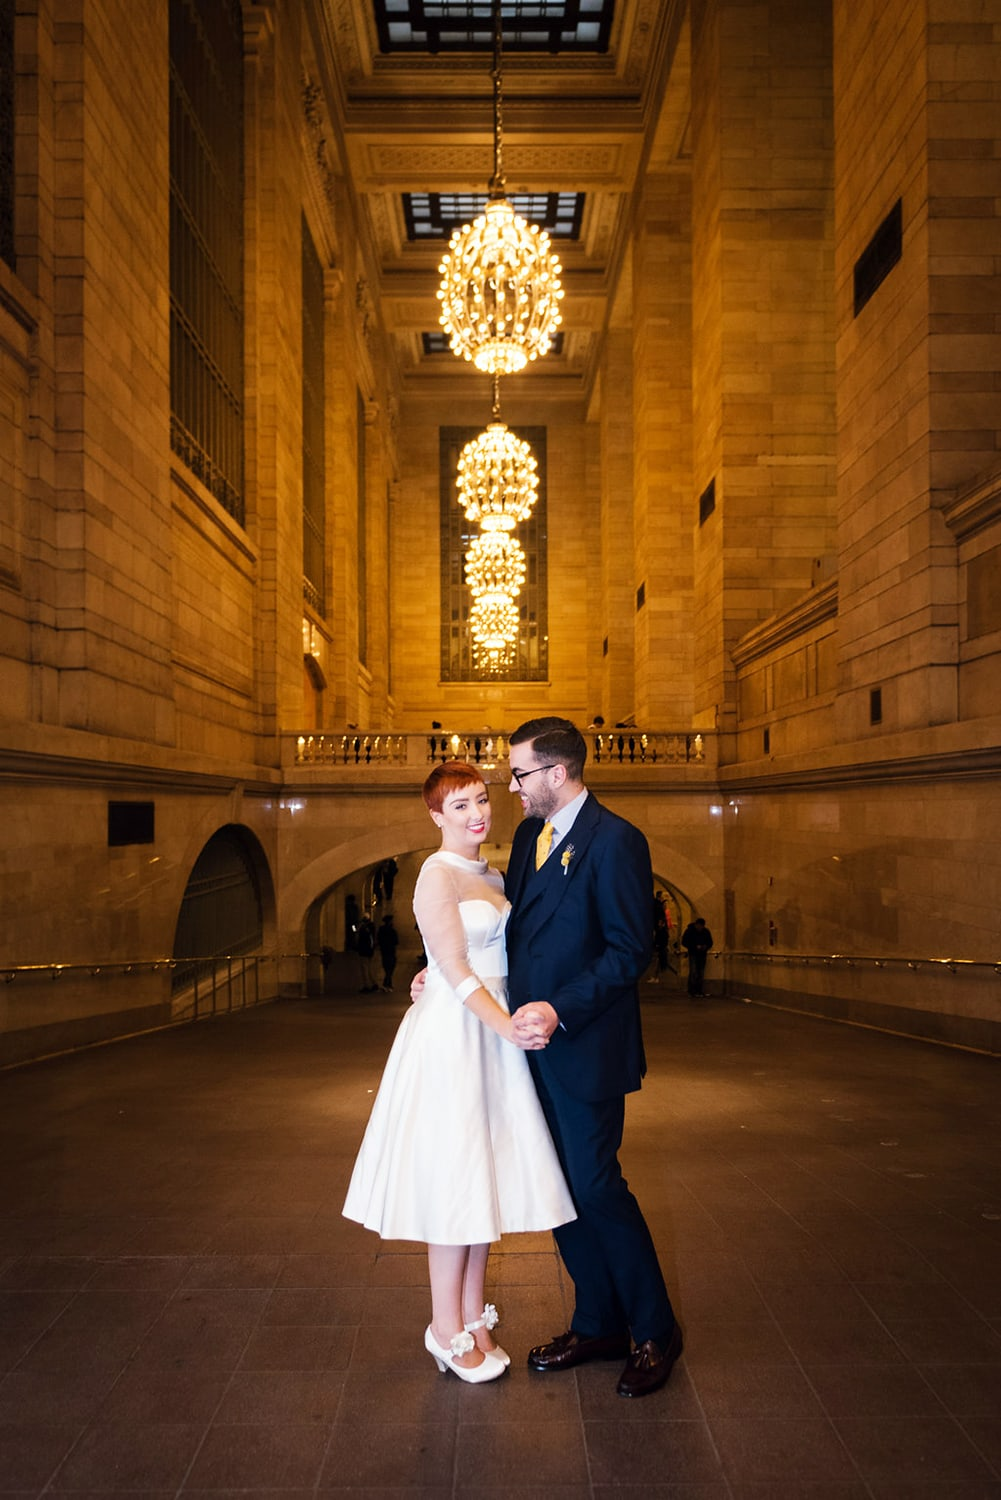 Vintage New York wedding